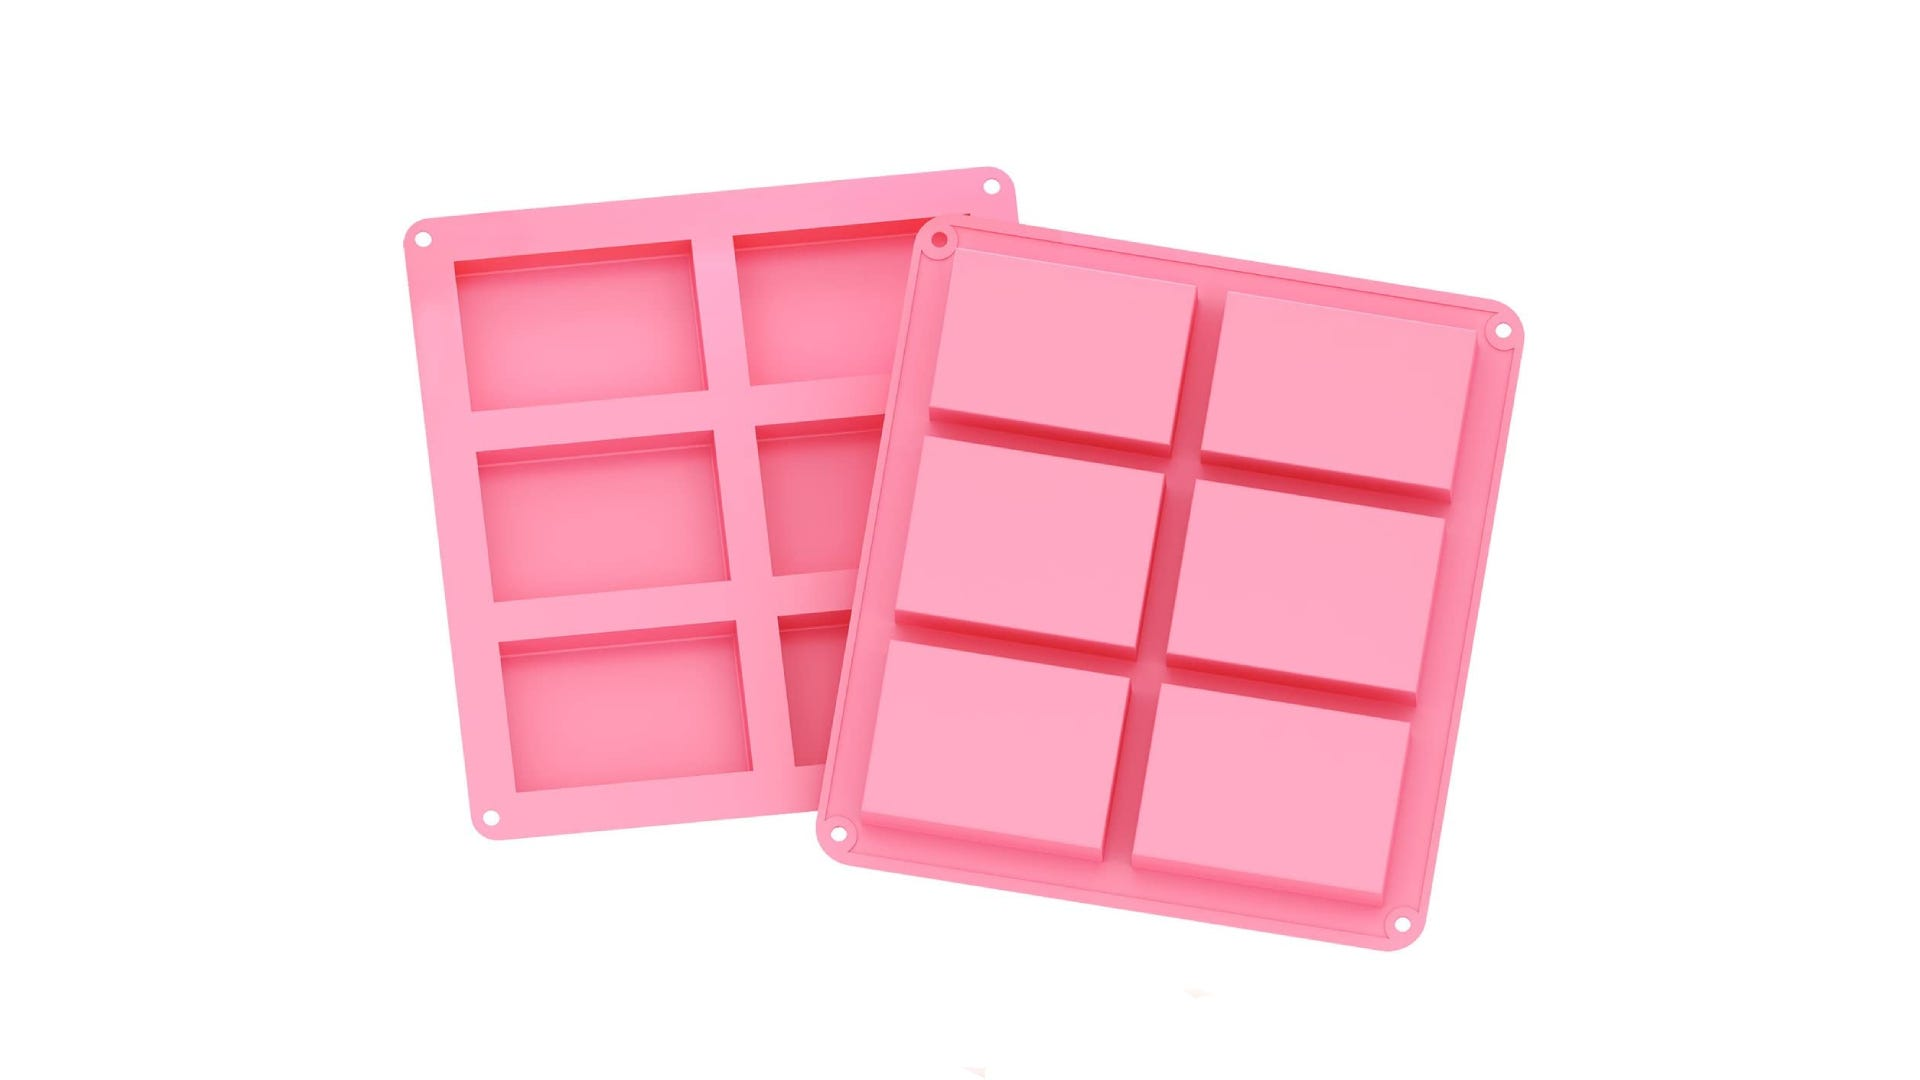 two pink silicone soap molds side by side, both with six cavities